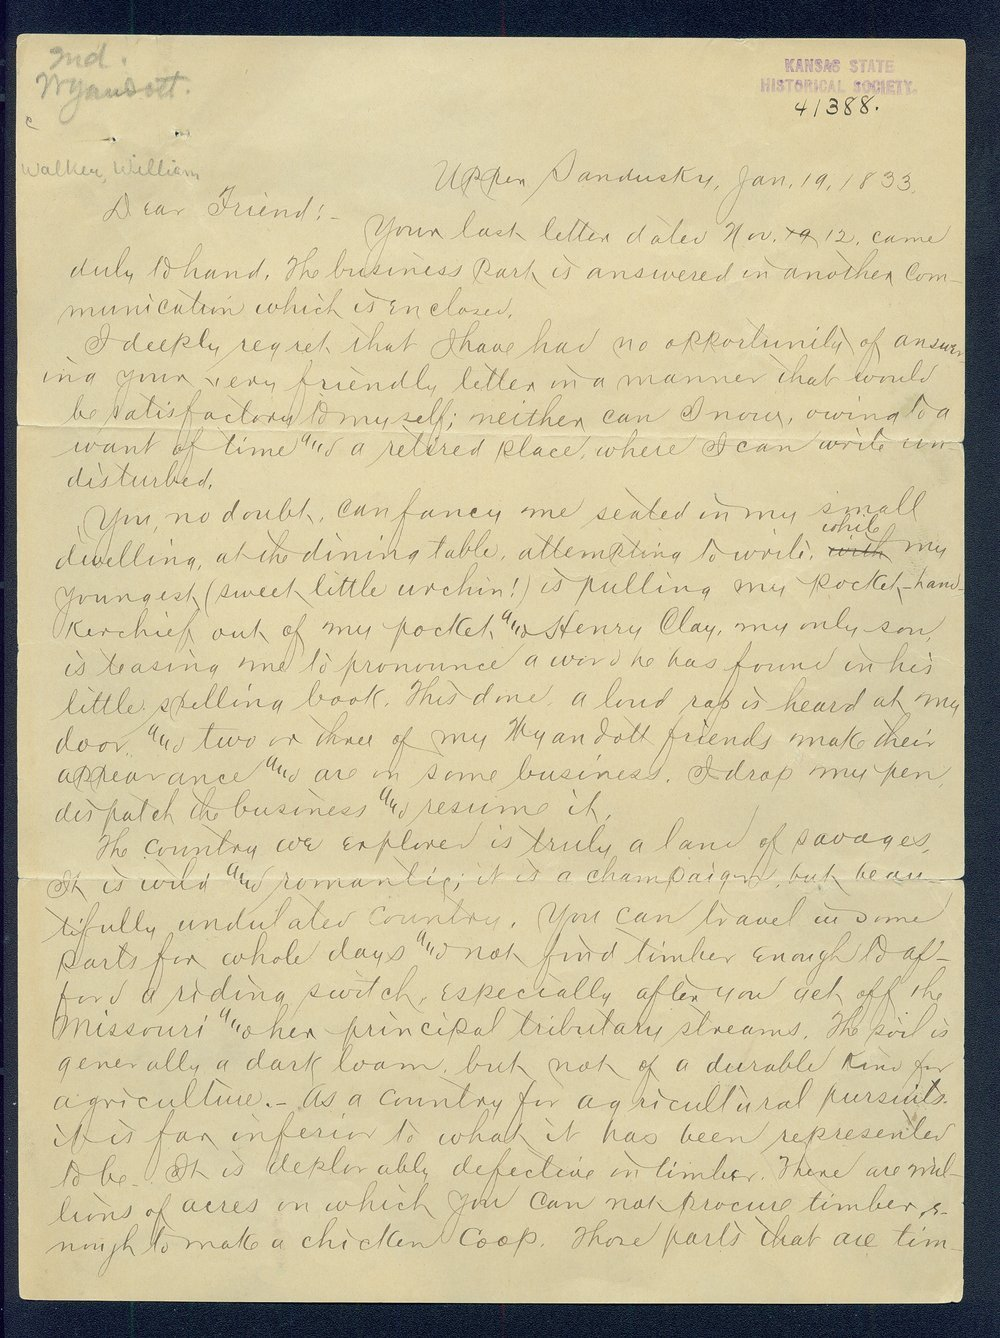 William Walker to G.P. Disosway - 1